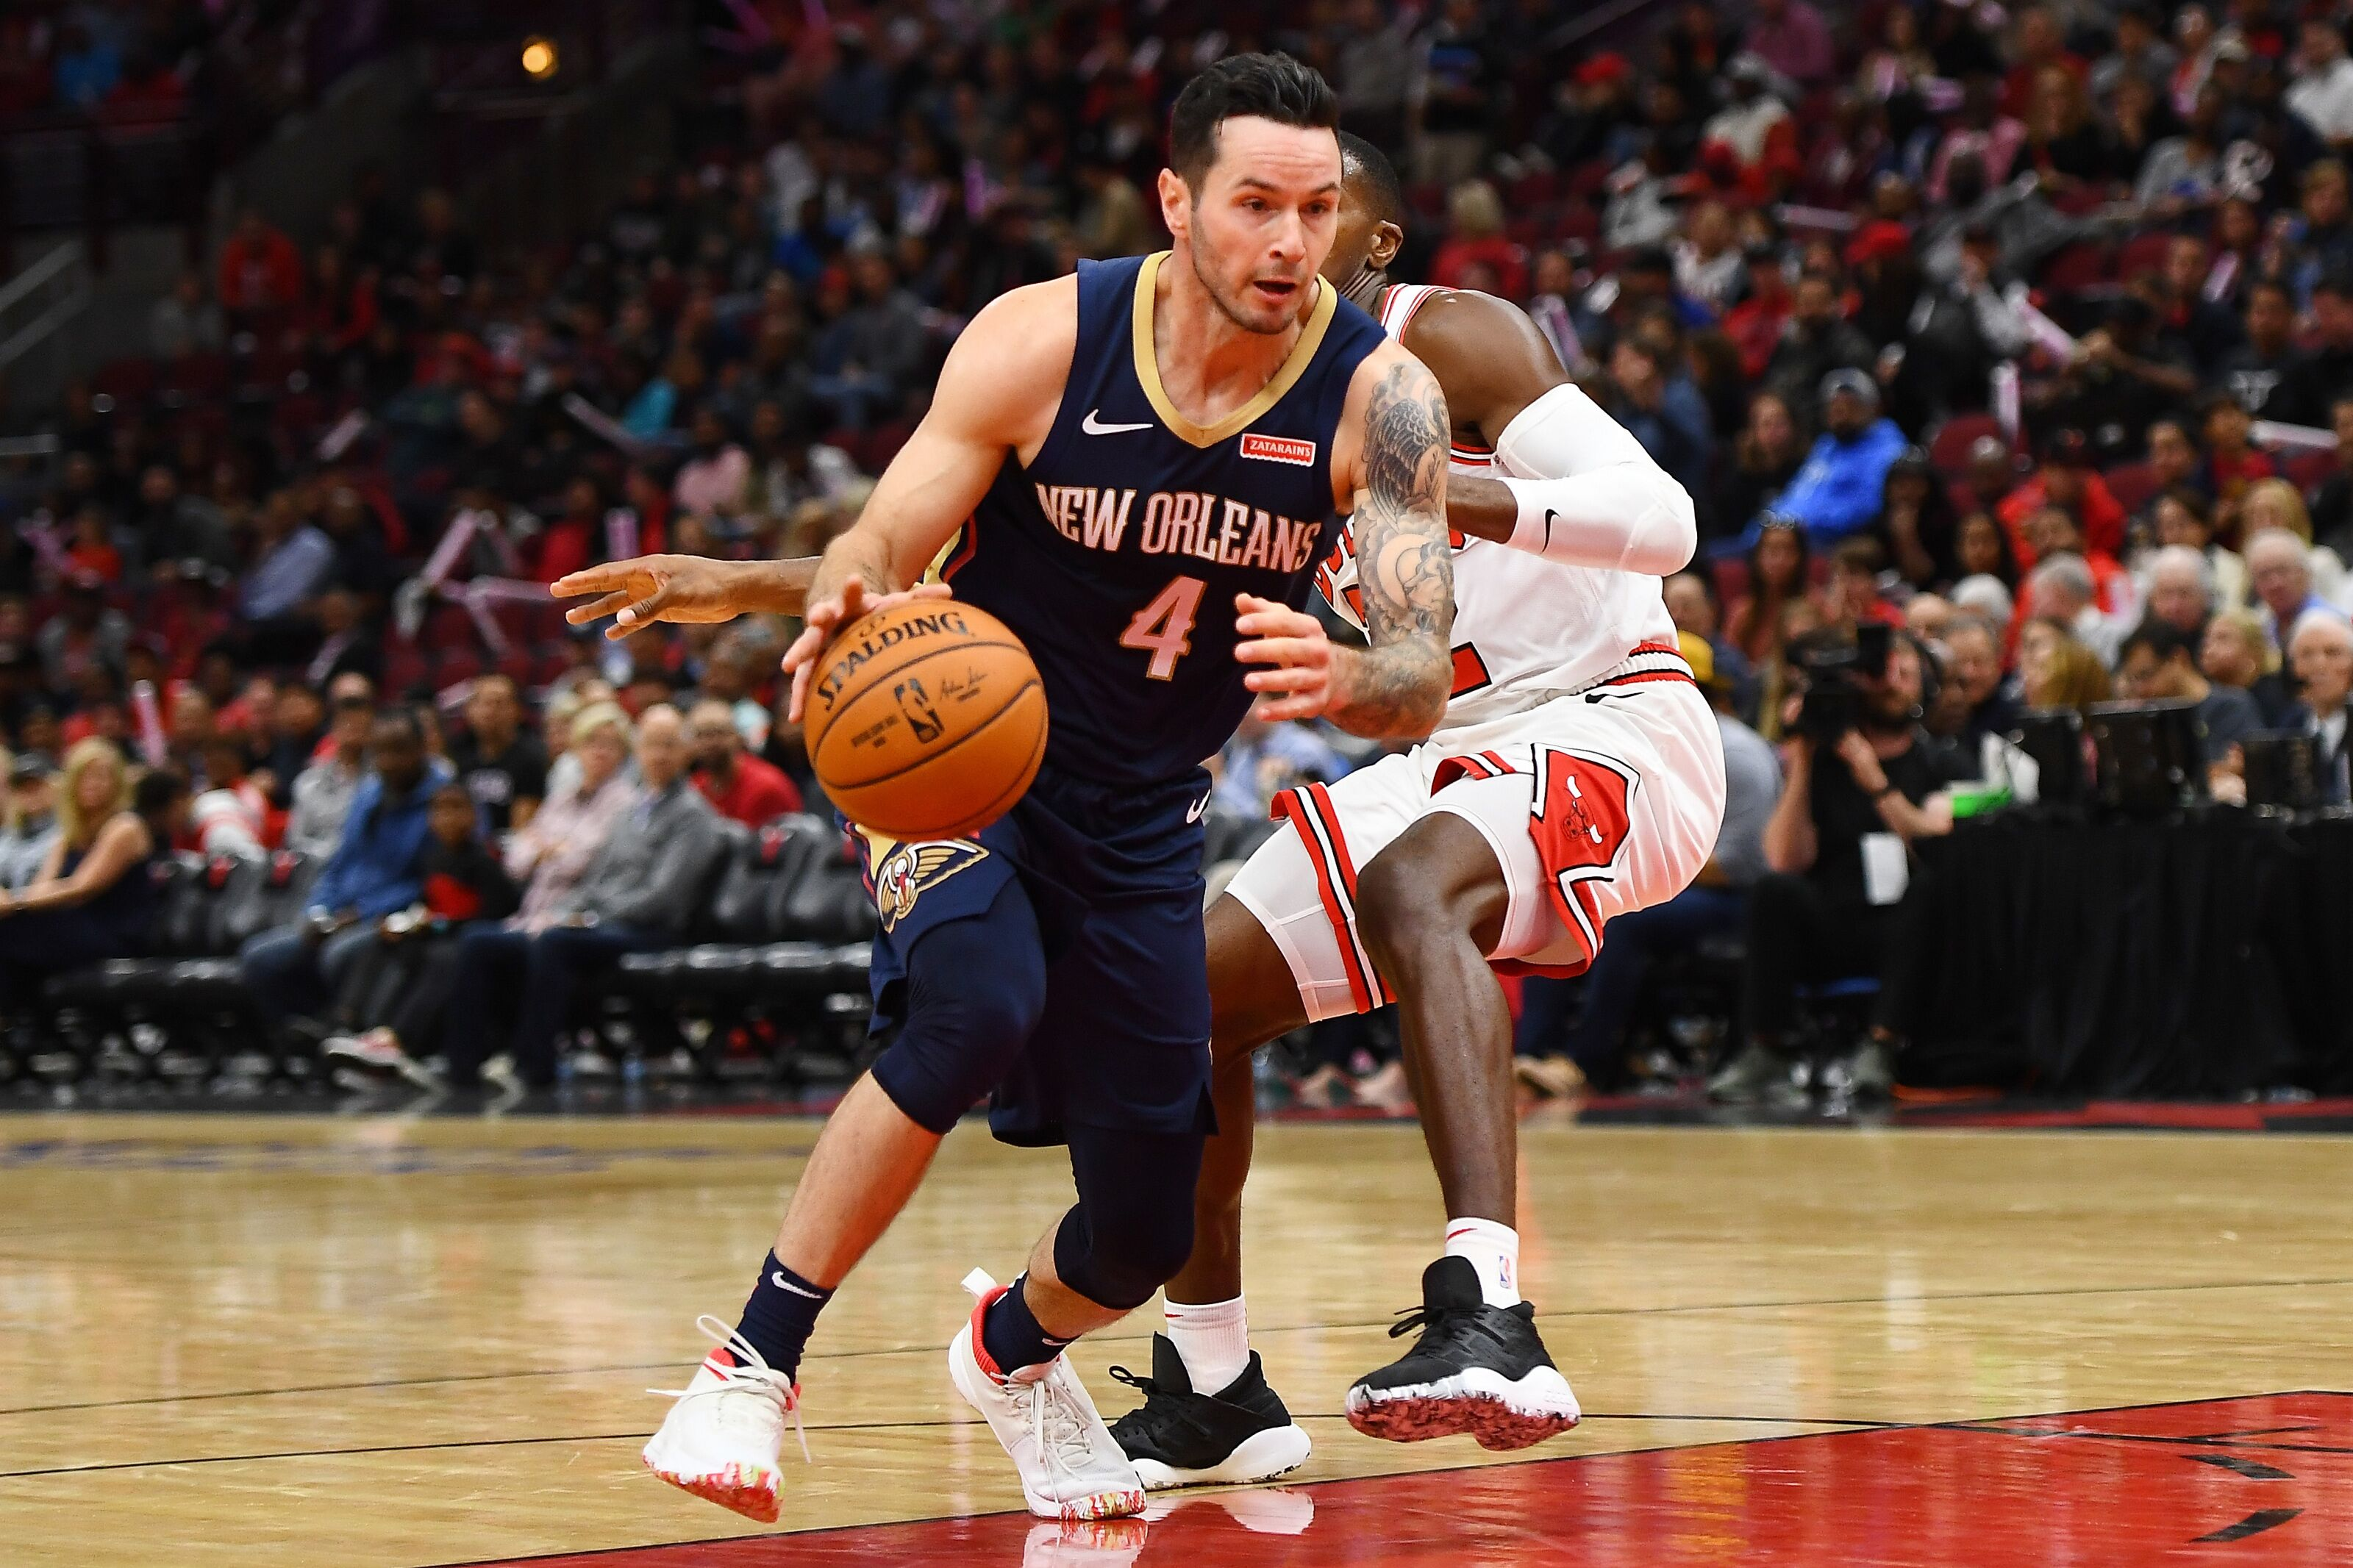 New Orleans Pelicans: Can Pels find offensive mesh with J.J. Redick?